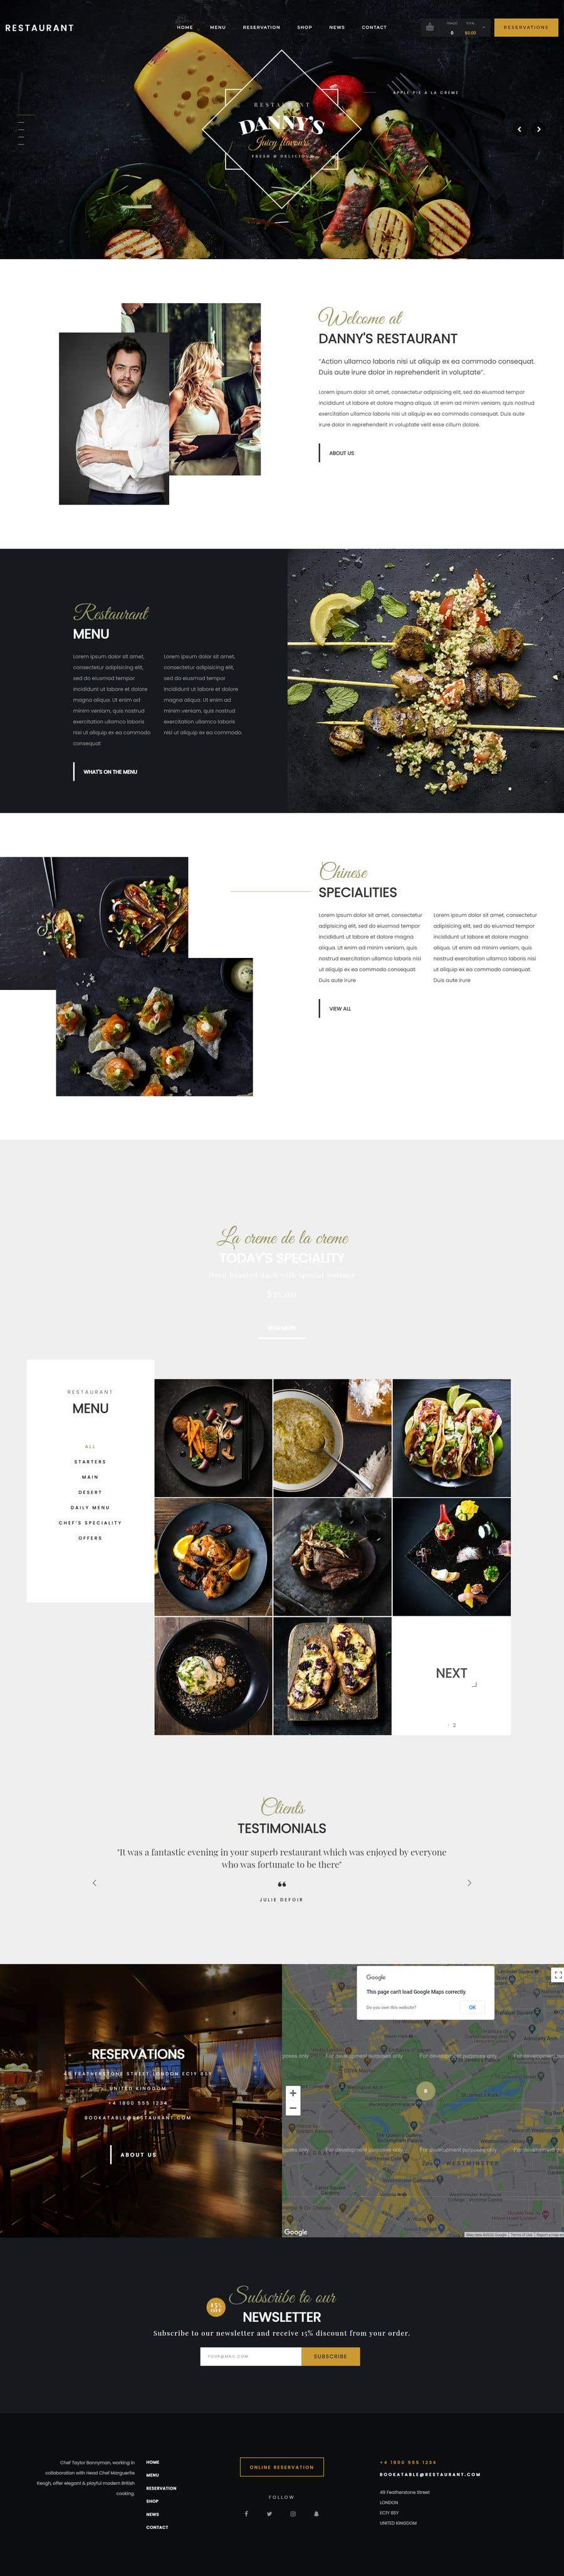 Bài tham dự cuộc thi #                                        28                                      cho                                         Build me Shopify store with online ordering for my takeaway restaurant